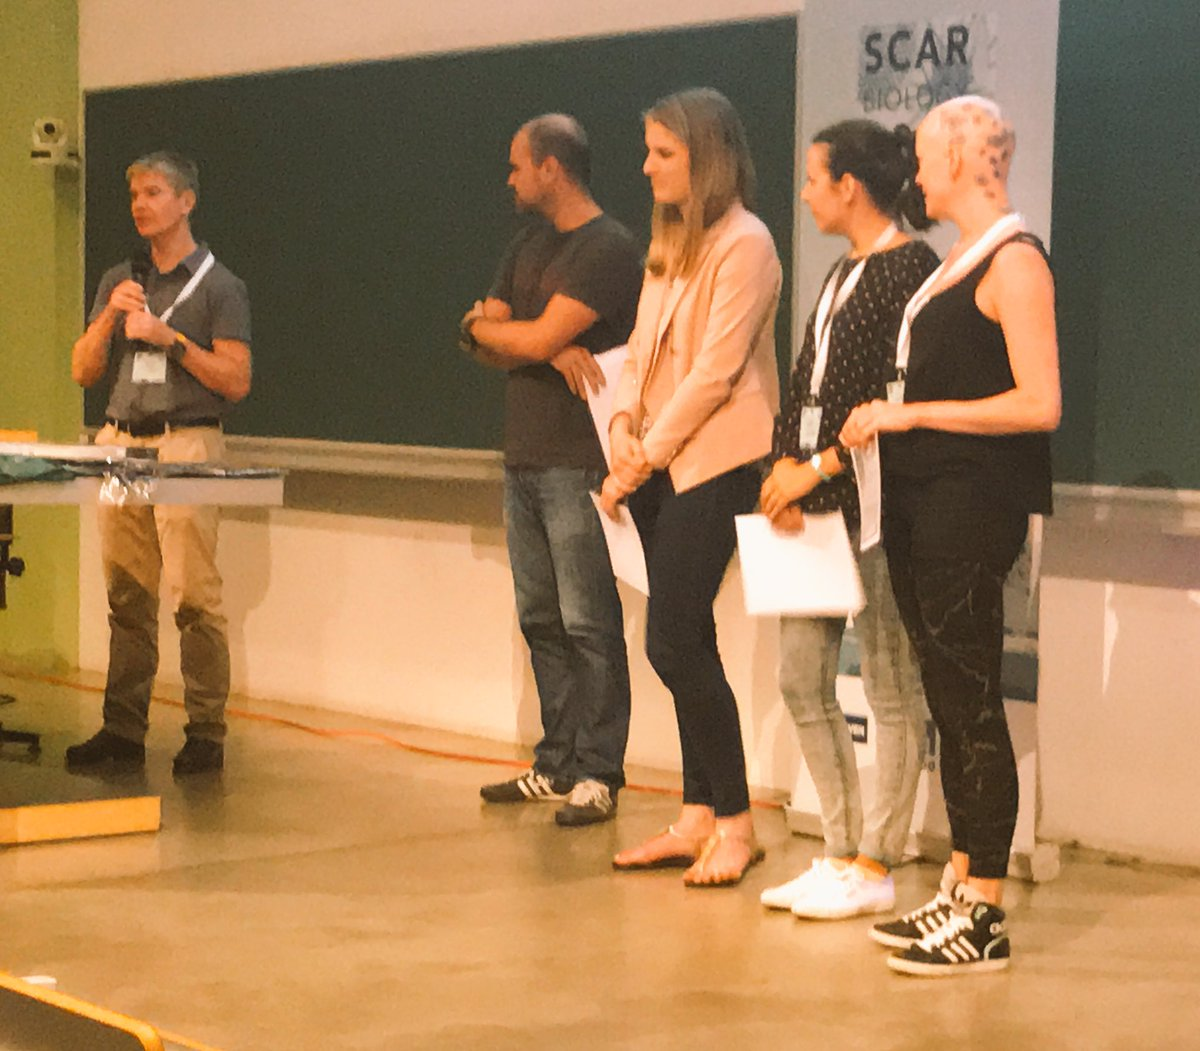 SCAR president @StevenChown1 presents prizes to ECR speakers &amp; poster presenters. The new #Antarctic biologists #SCARbio17 <br>http://pic.twitter.com/6CY8AEO7IV